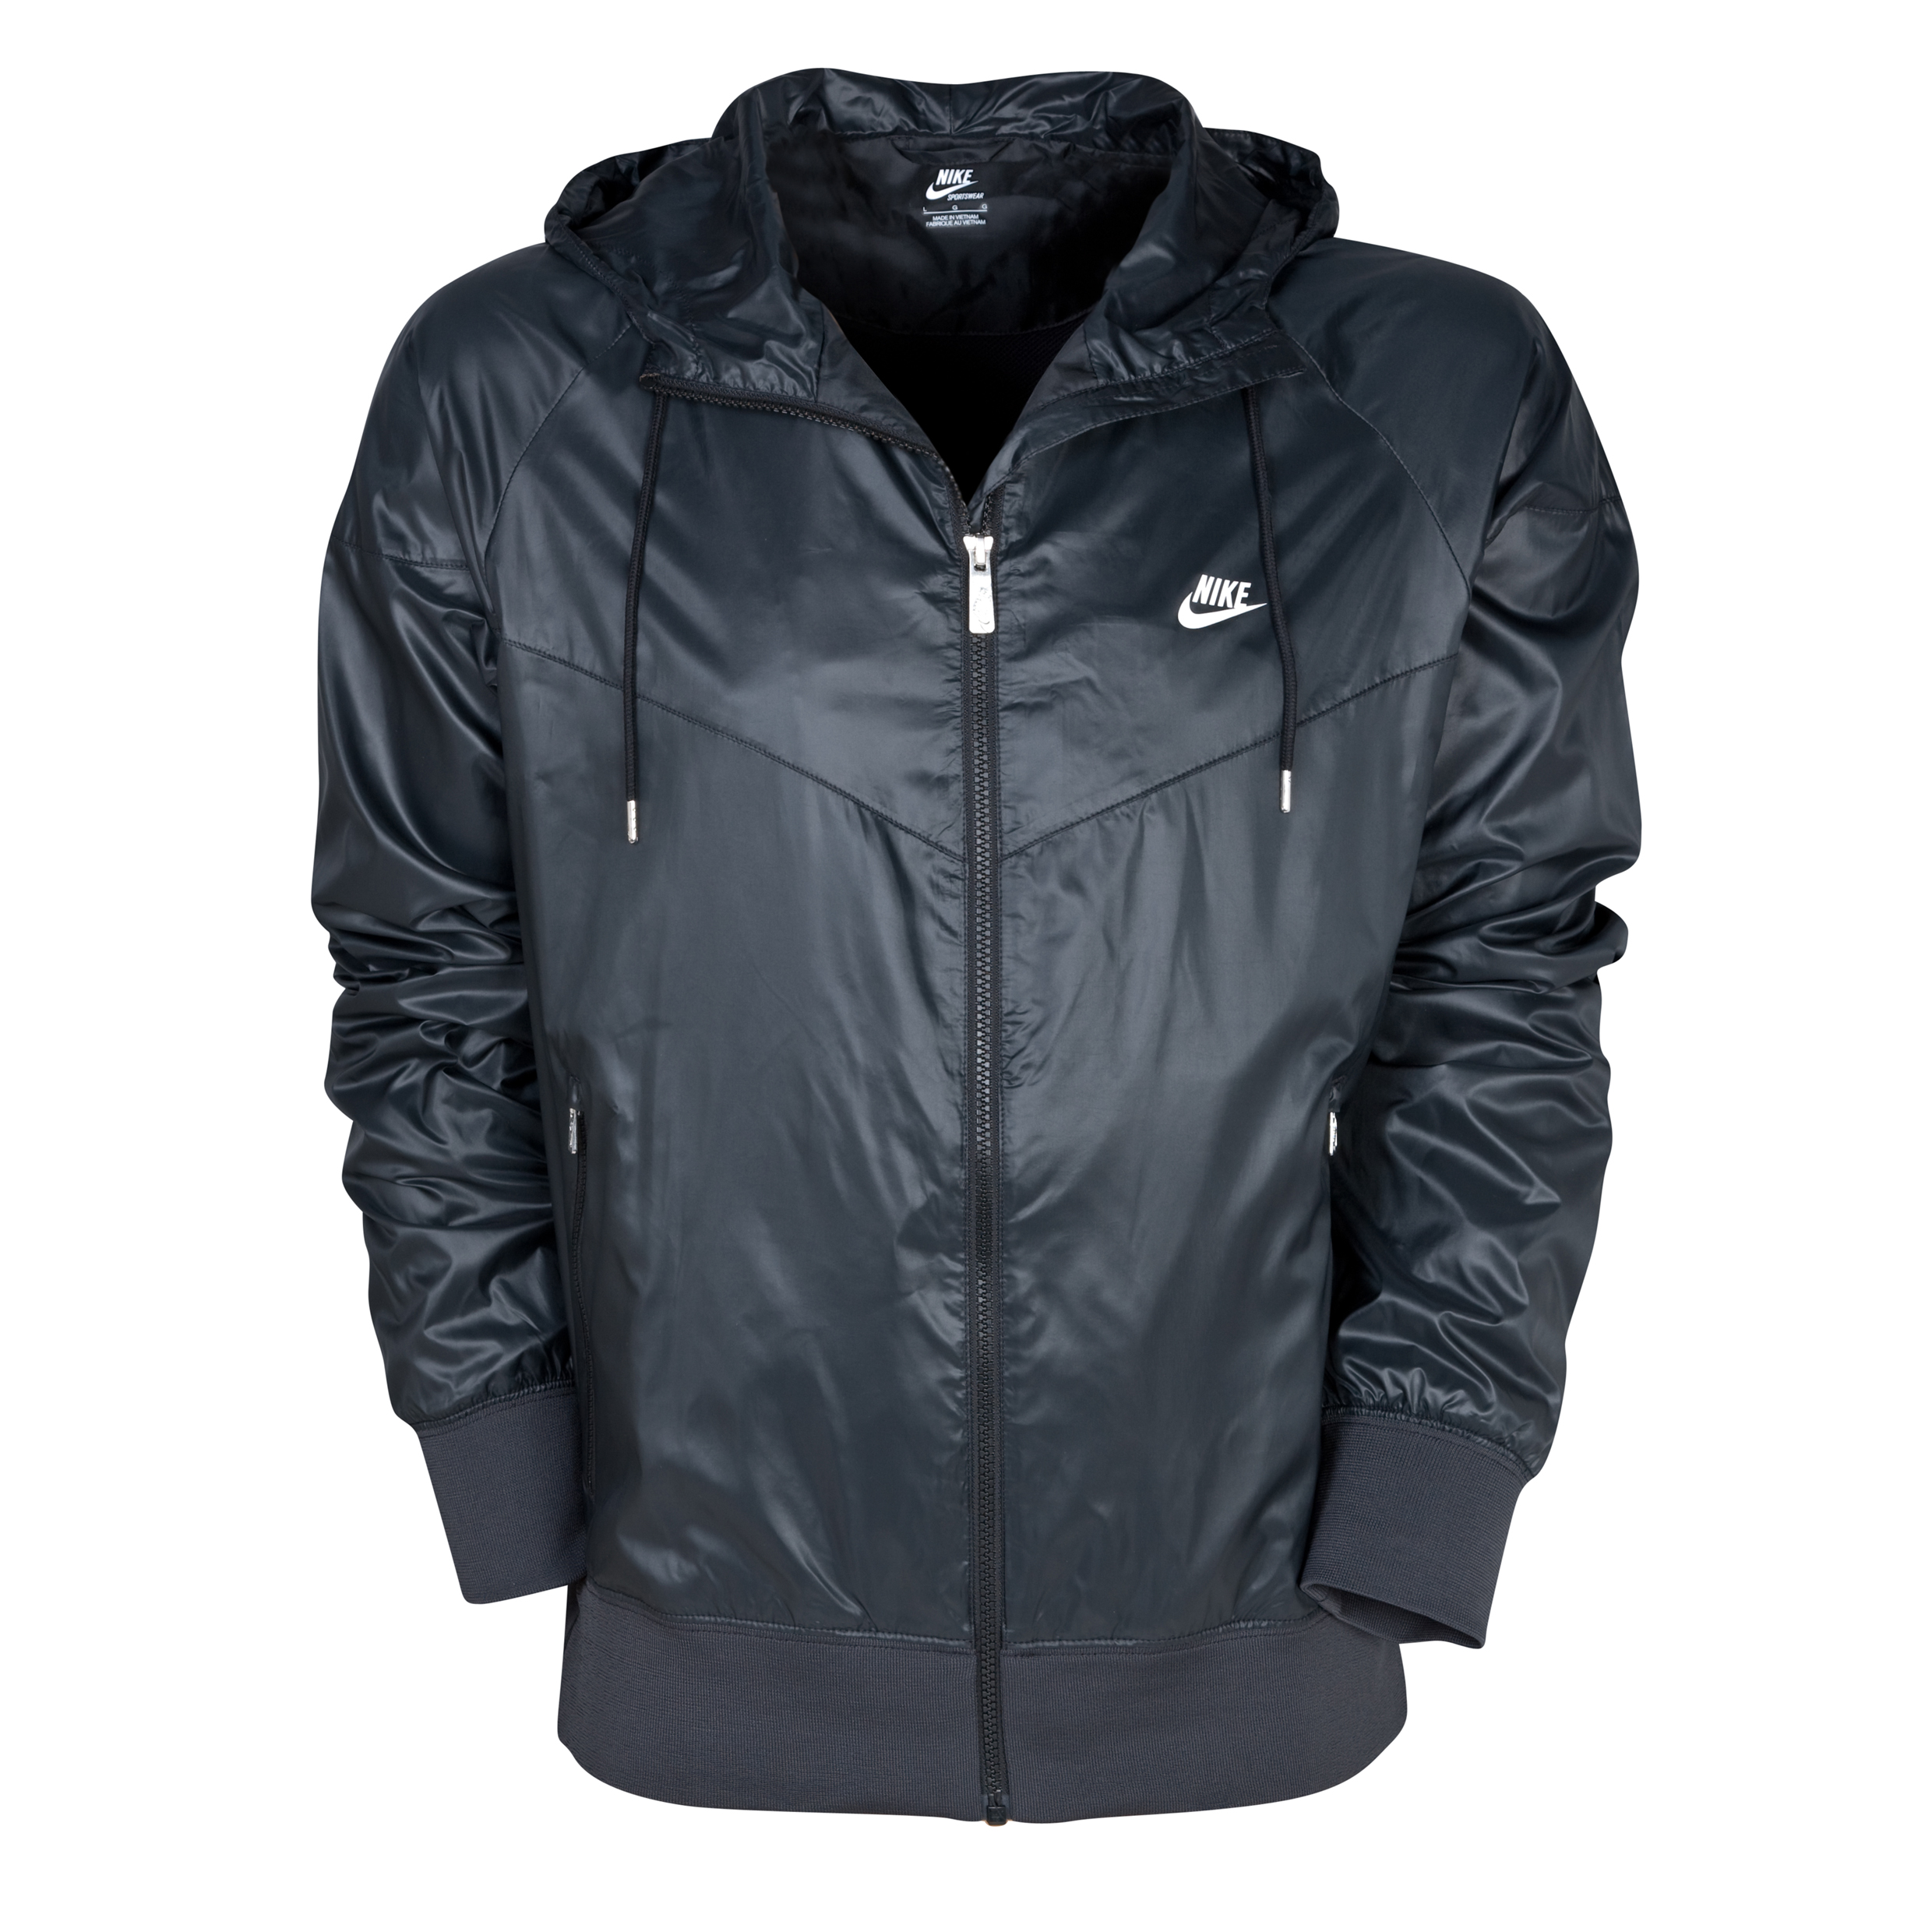 Nike Windrunner Jacket - Black